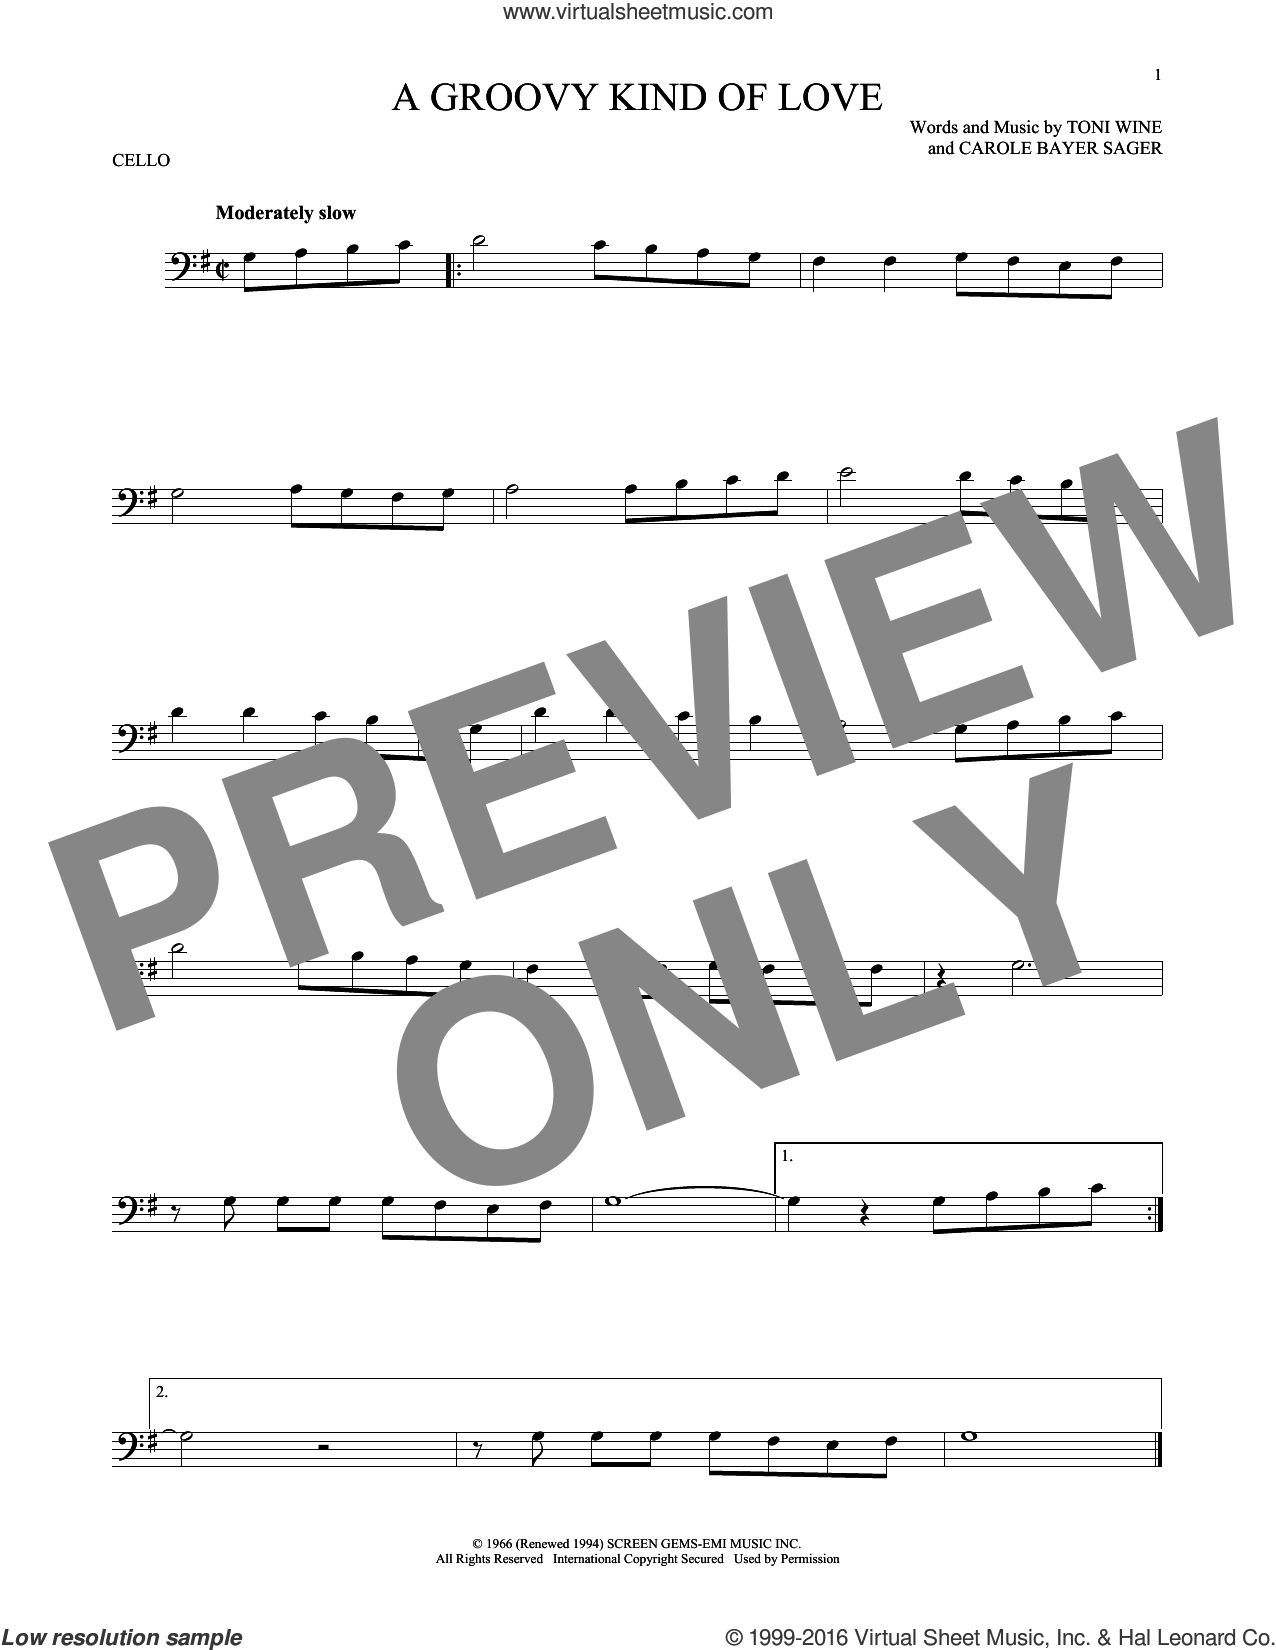 A Groovy Kind Of Love sheet music for cello solo by Phil Collins, The Mindbenders, Carole Bayer Sager and Toni Wine, intermediate skill level